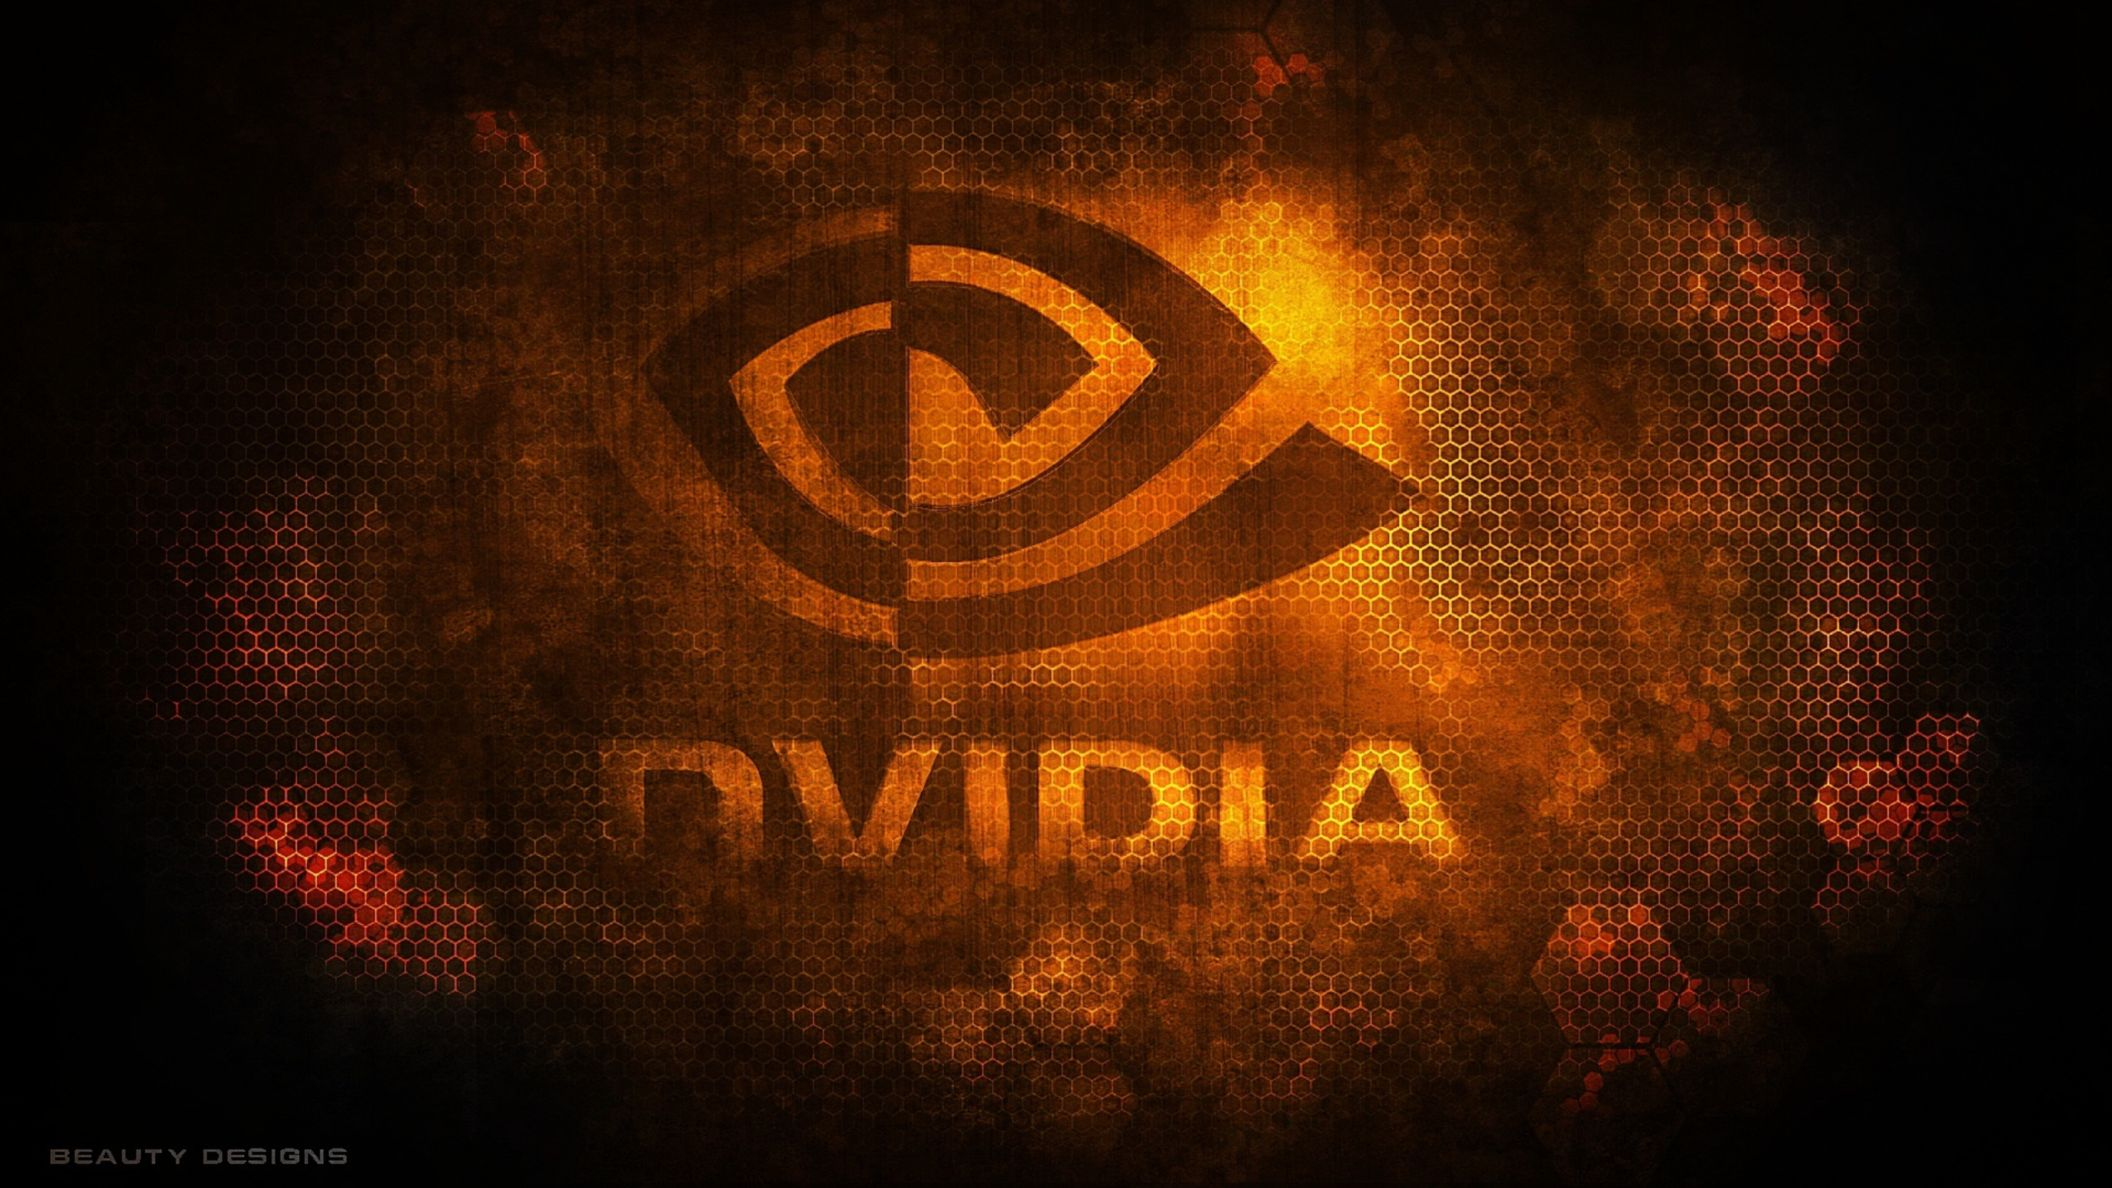 Download free HD Nvidia HD Wallpaper, image